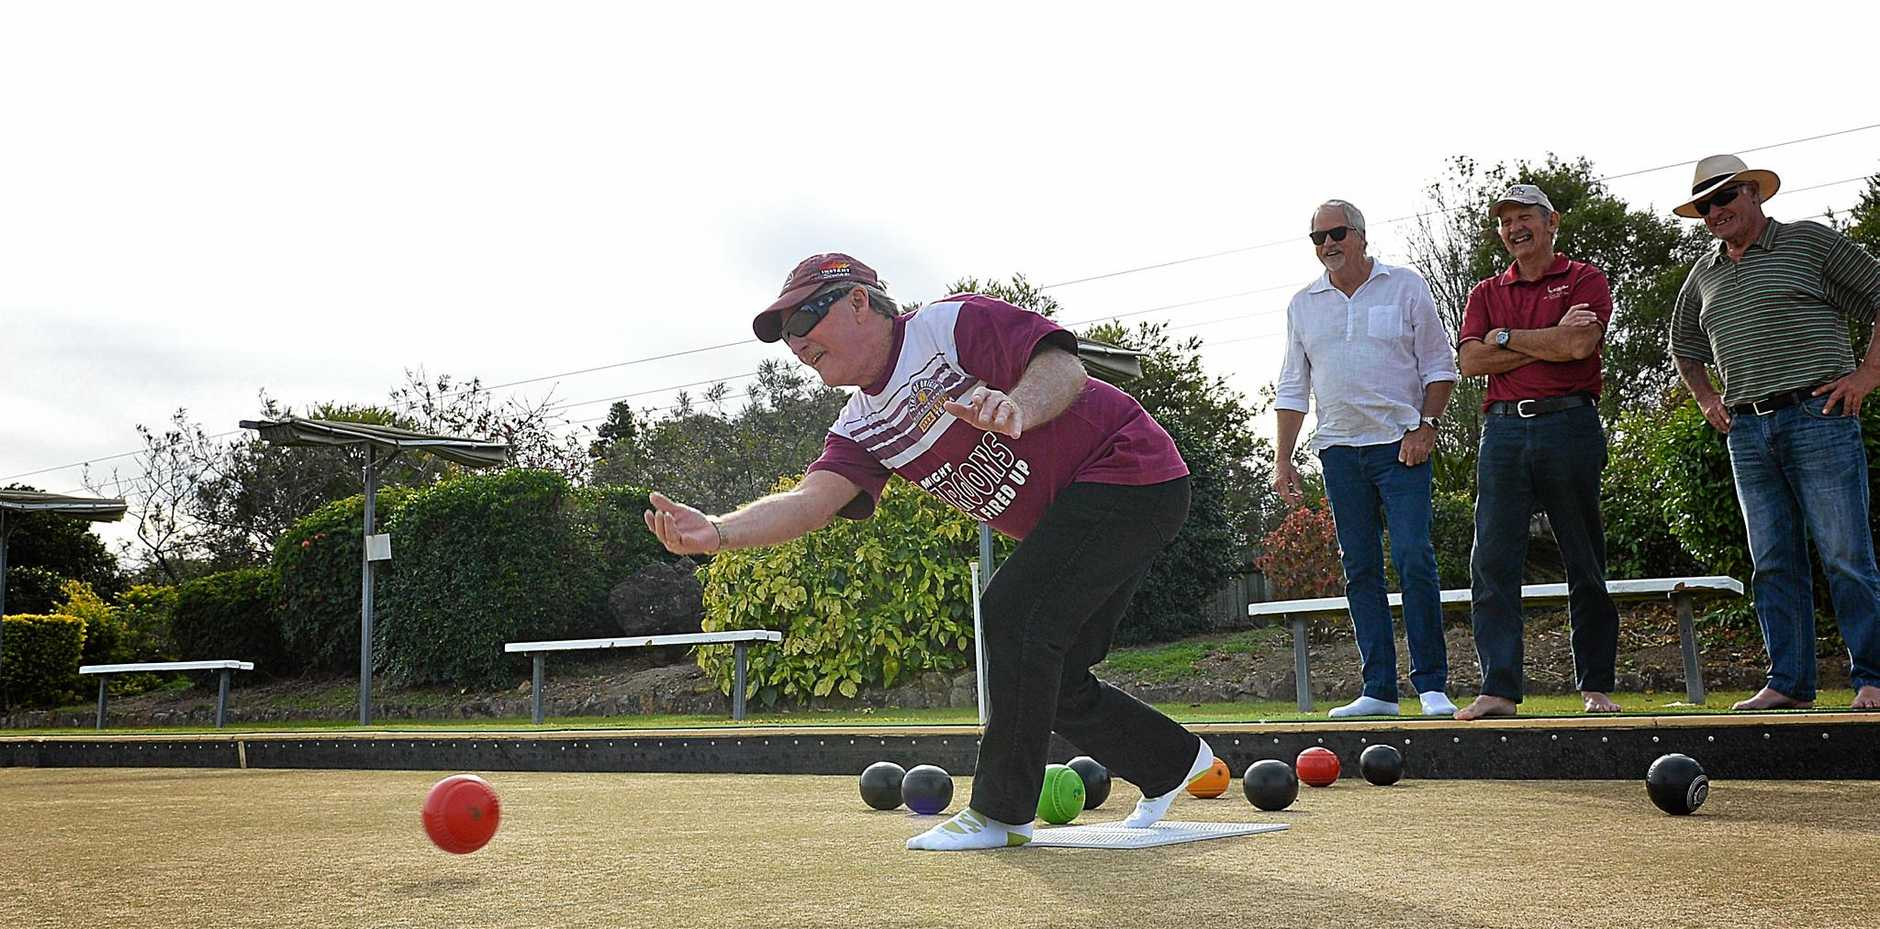 FUN TIMES: Come along and try bowls just like Graham McCormack who is pictured here playing social bowls at Gympie Bowls Club in July.